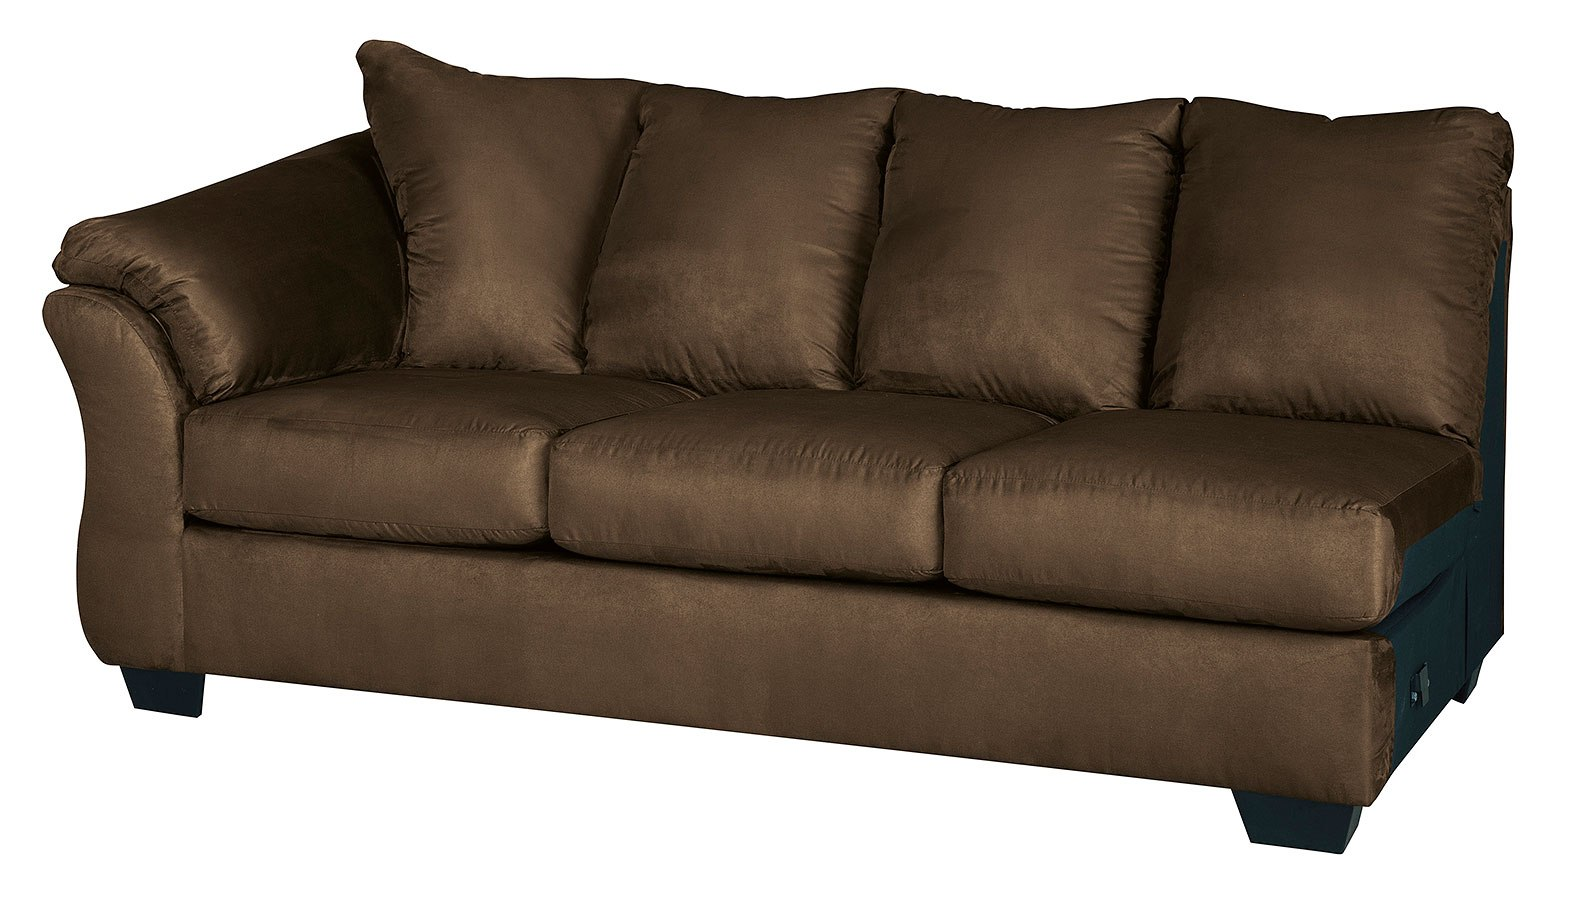 Darcy Cafe Right Chaise Sectional By Signature Design By